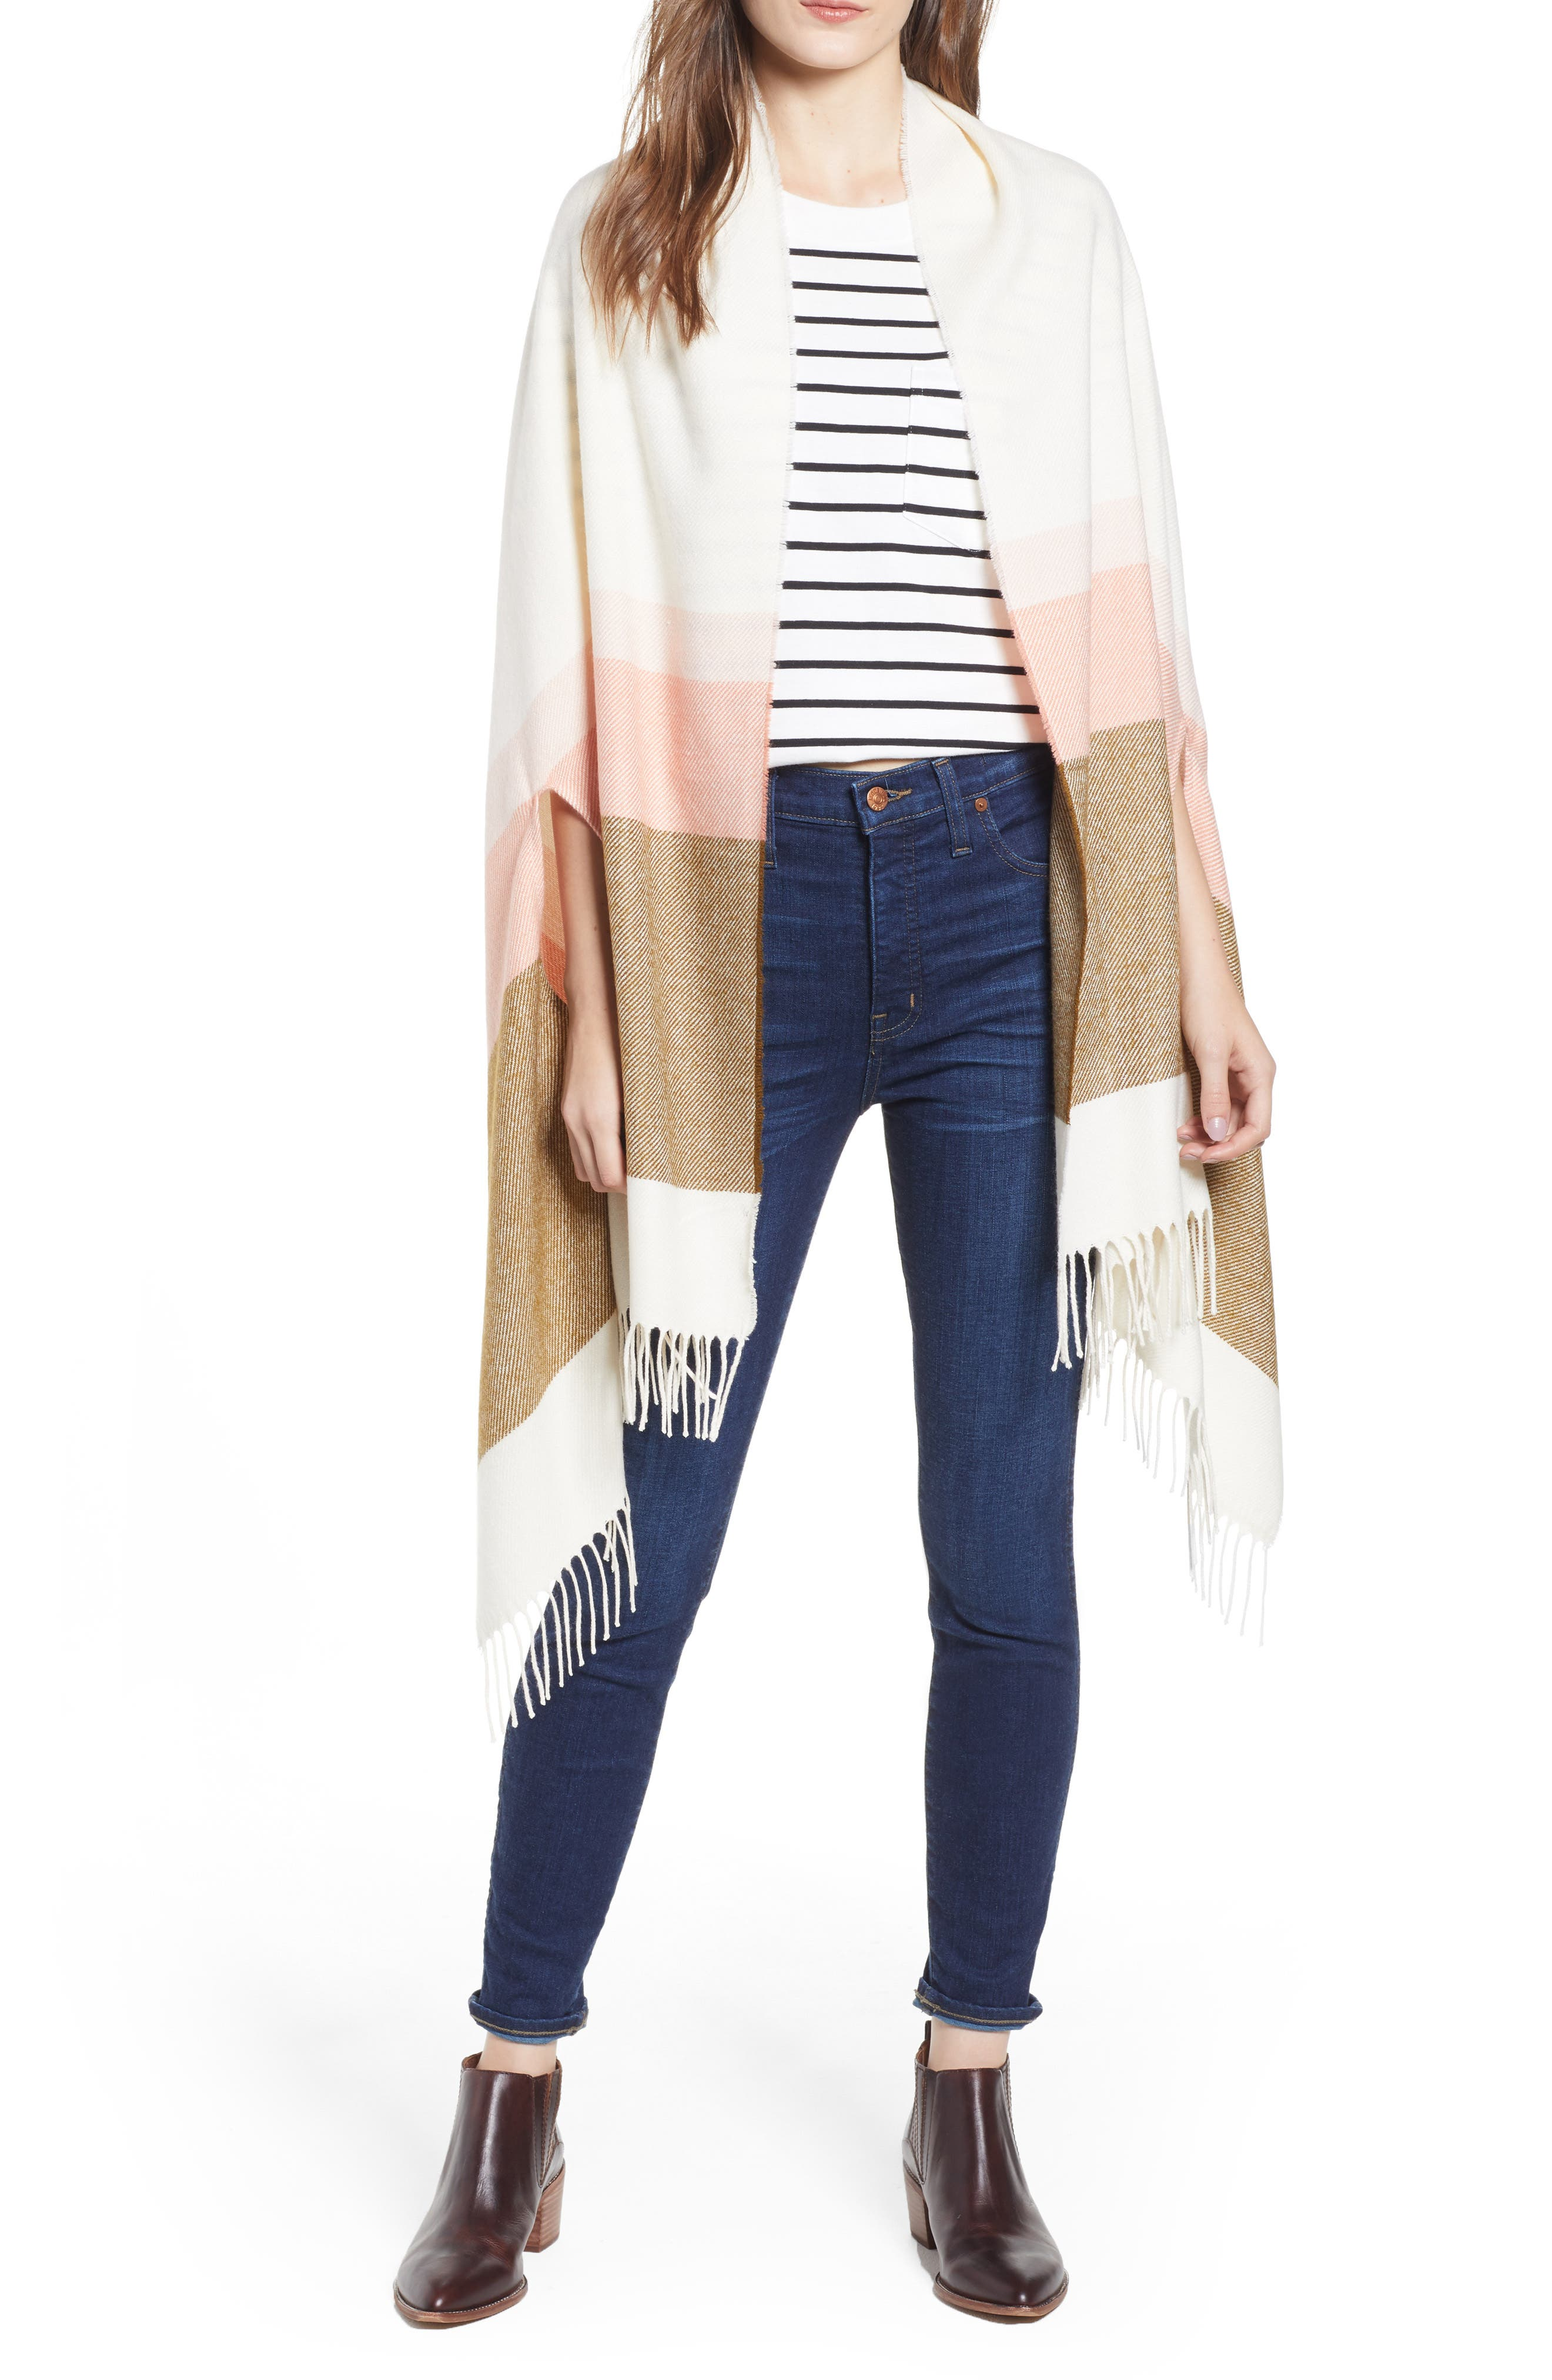 MADEWELL, Placed Stripe Cape Scarf, Main thumbnail 1, color, 200